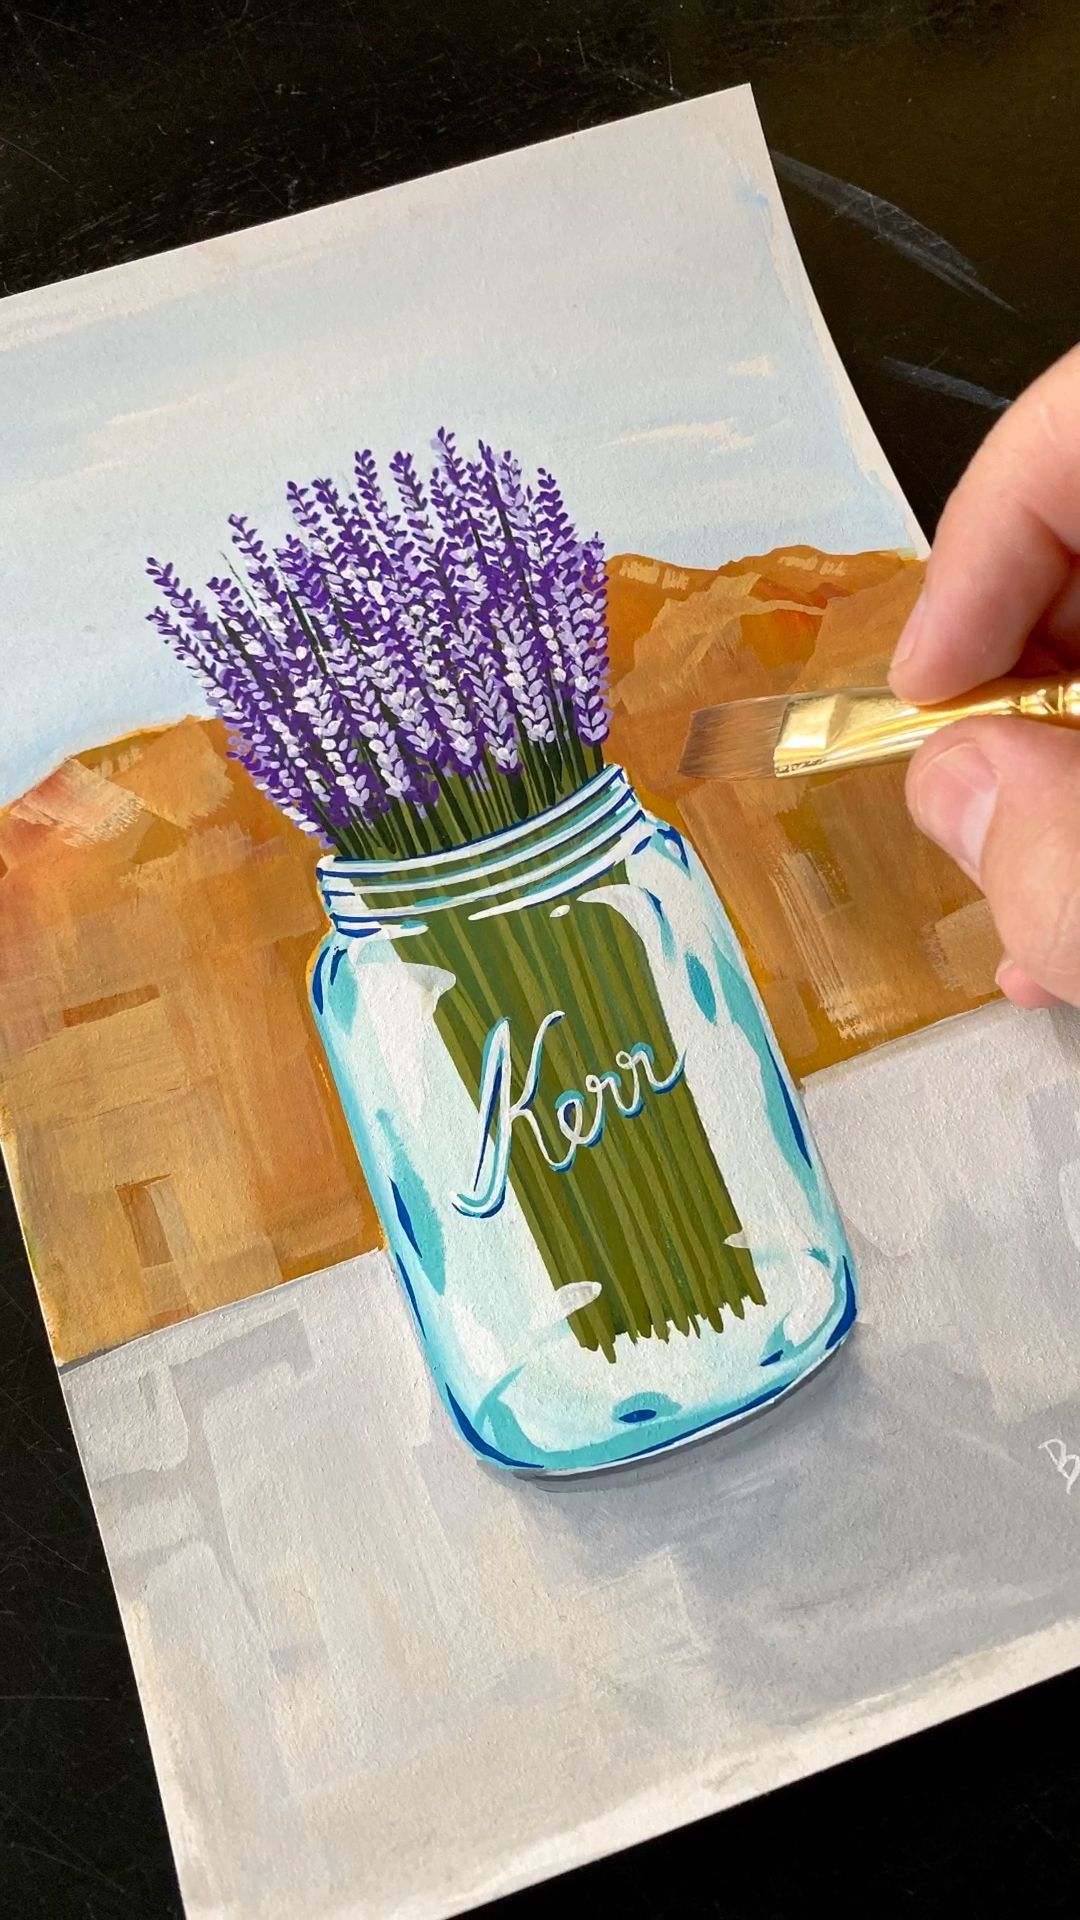 Photo of Gouache Painting a Mason Jar with Lavender,  #Gouache #Jar #Lavender #mason #Painting